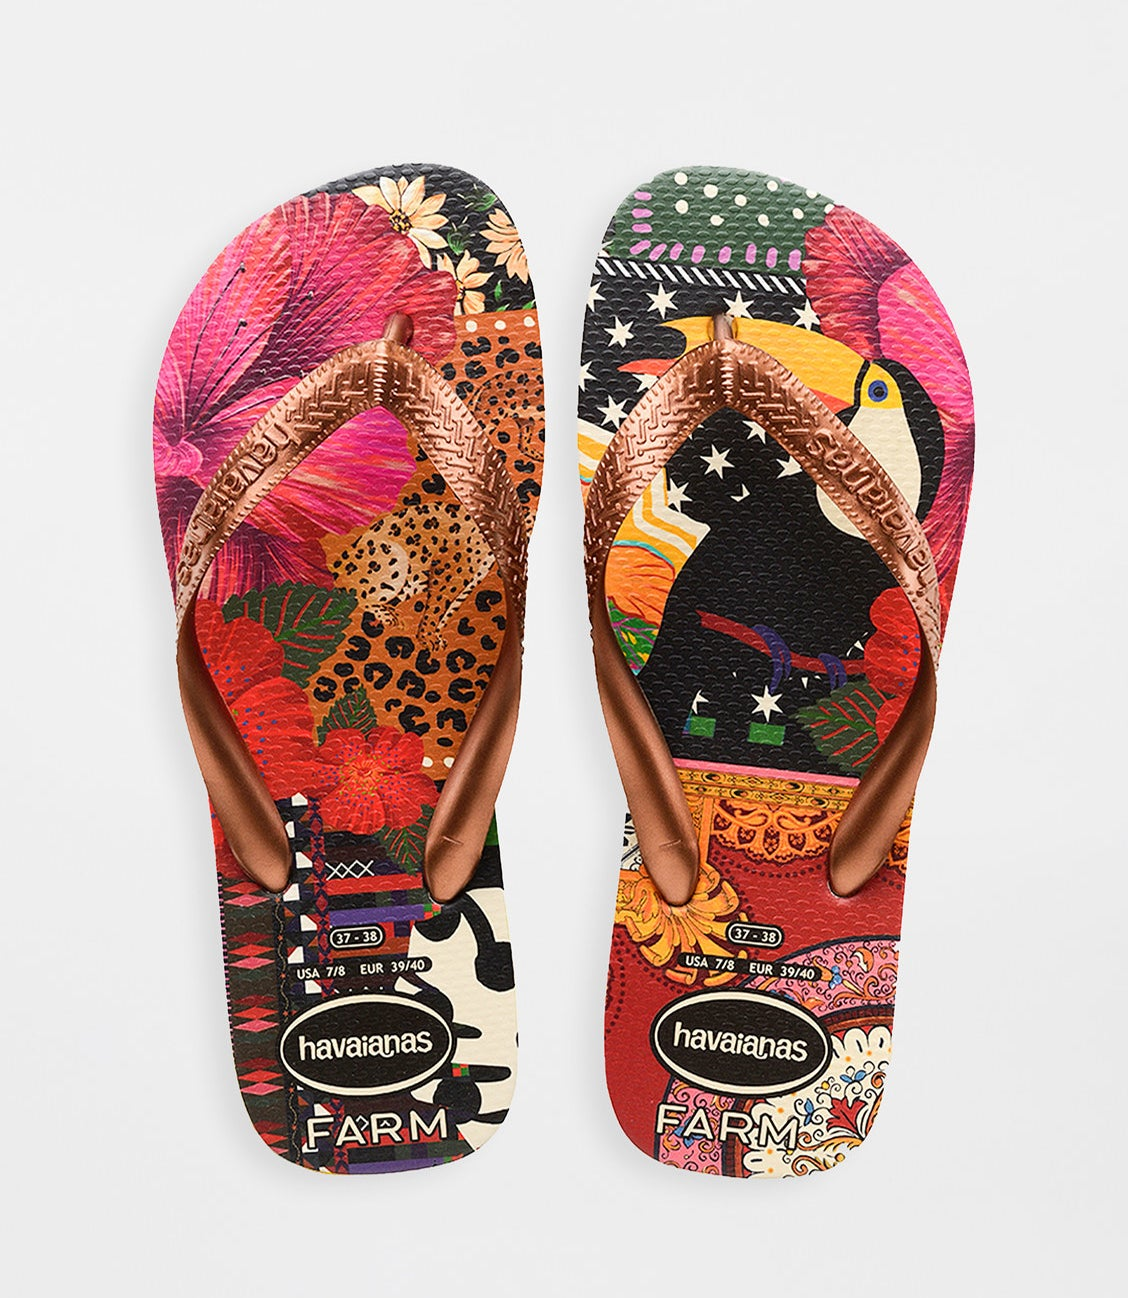 flip flops with brightly colored foot bases including a leopard, a toucan, and various designs with gold metallic straps